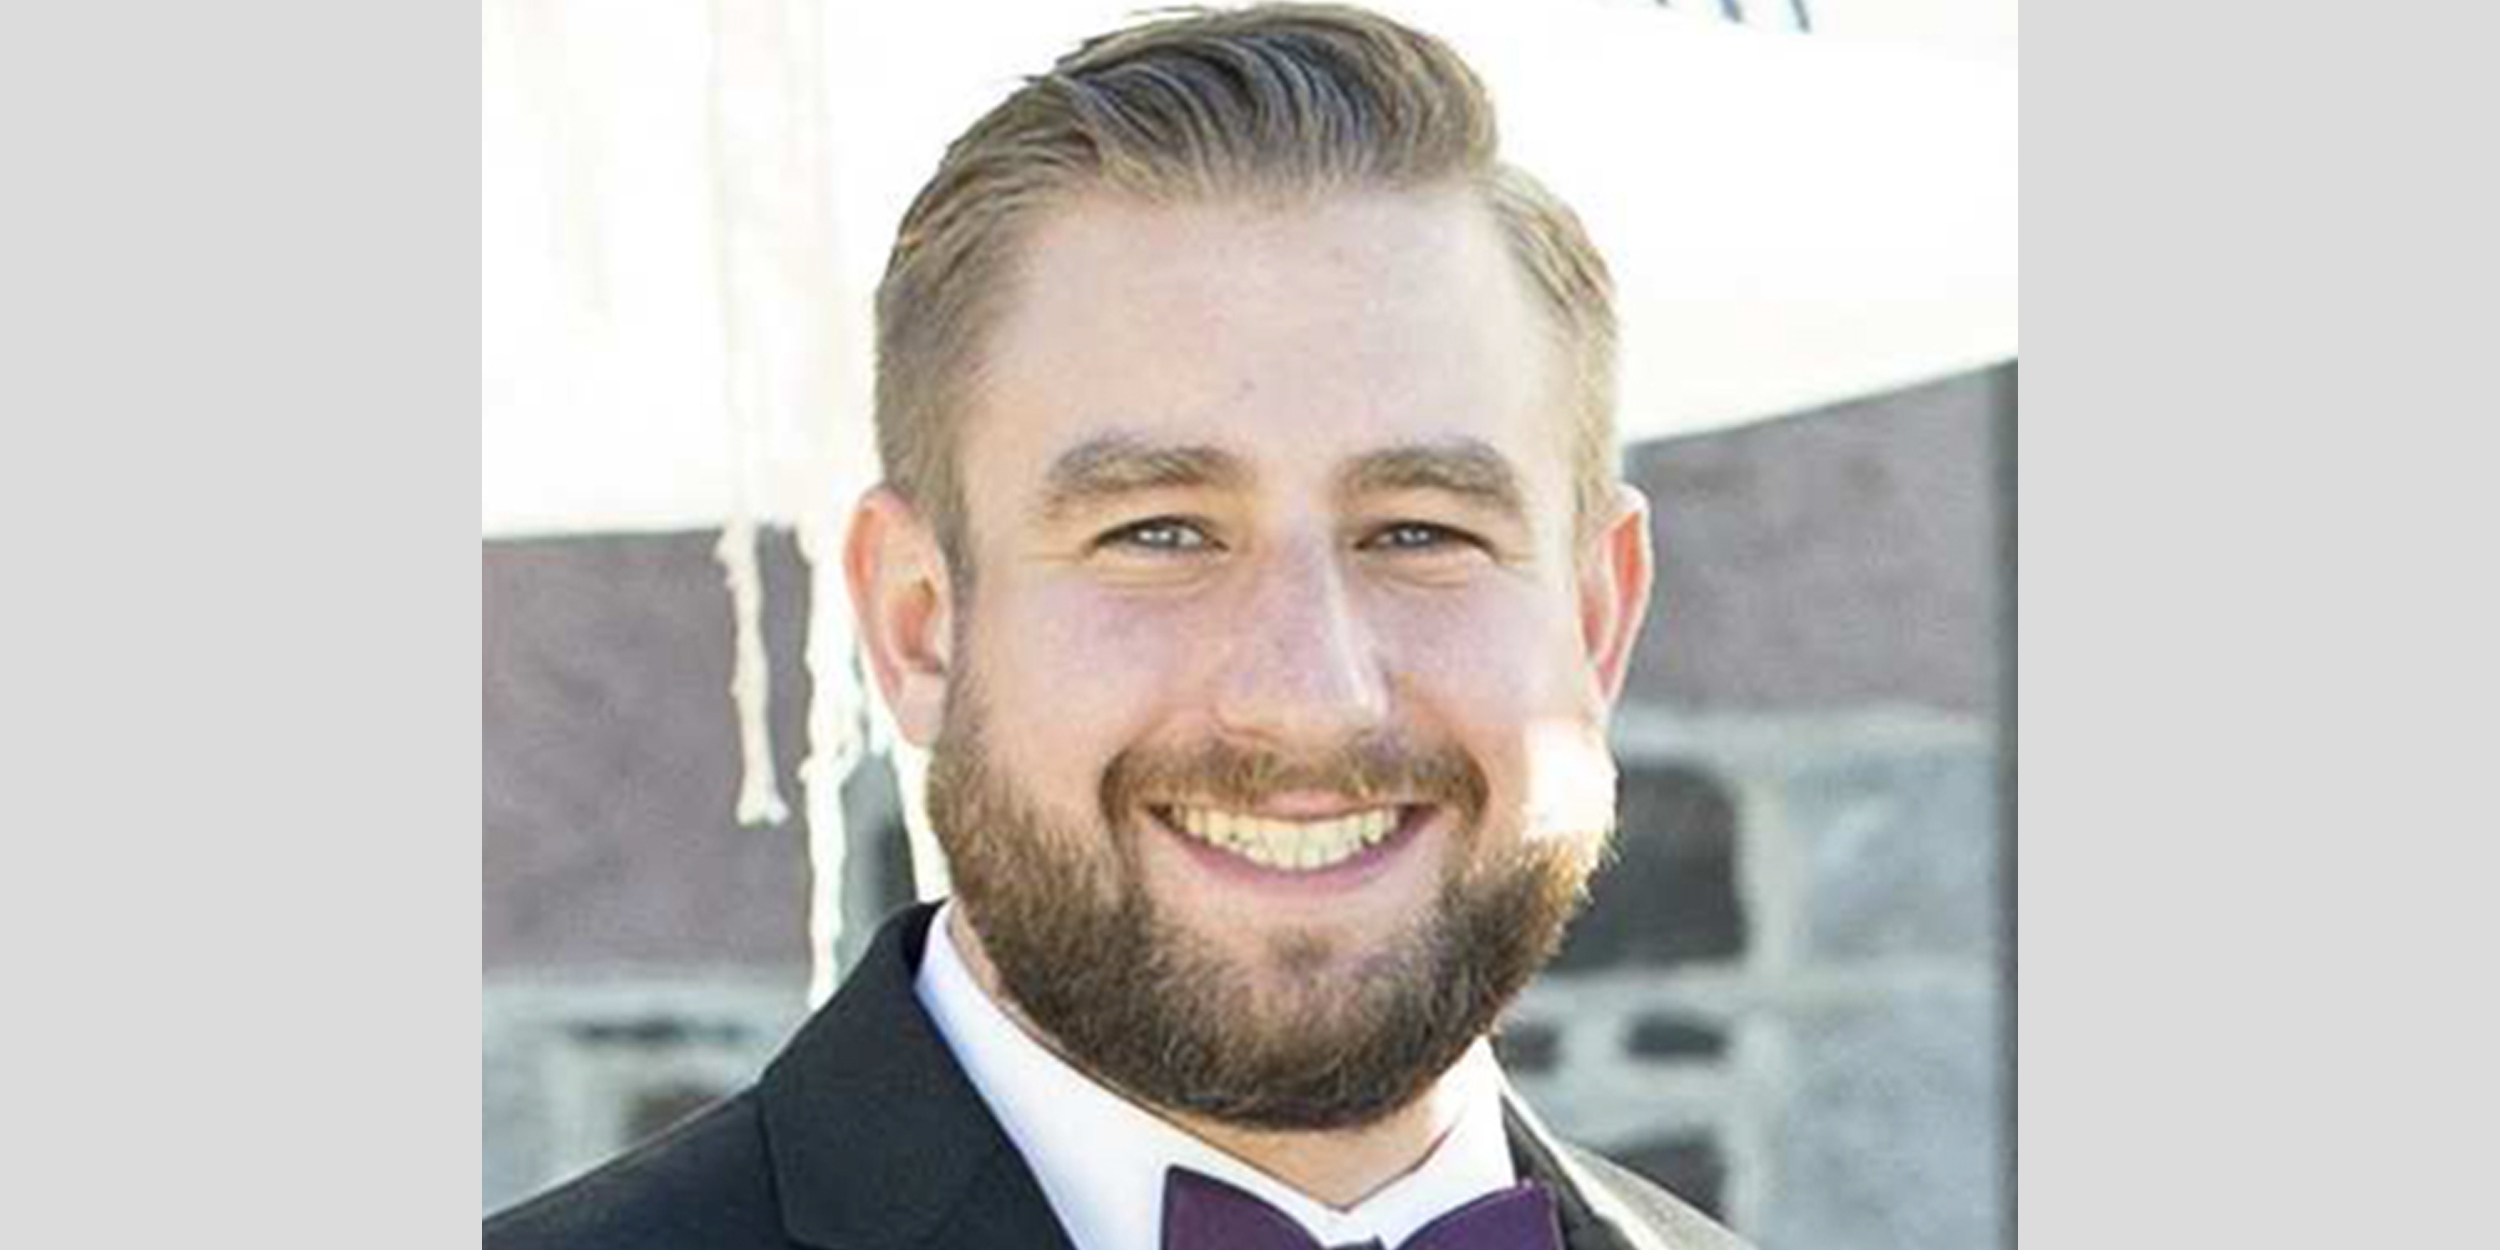 Family of slain DNC staffer can sue Fox News, appeals court rules